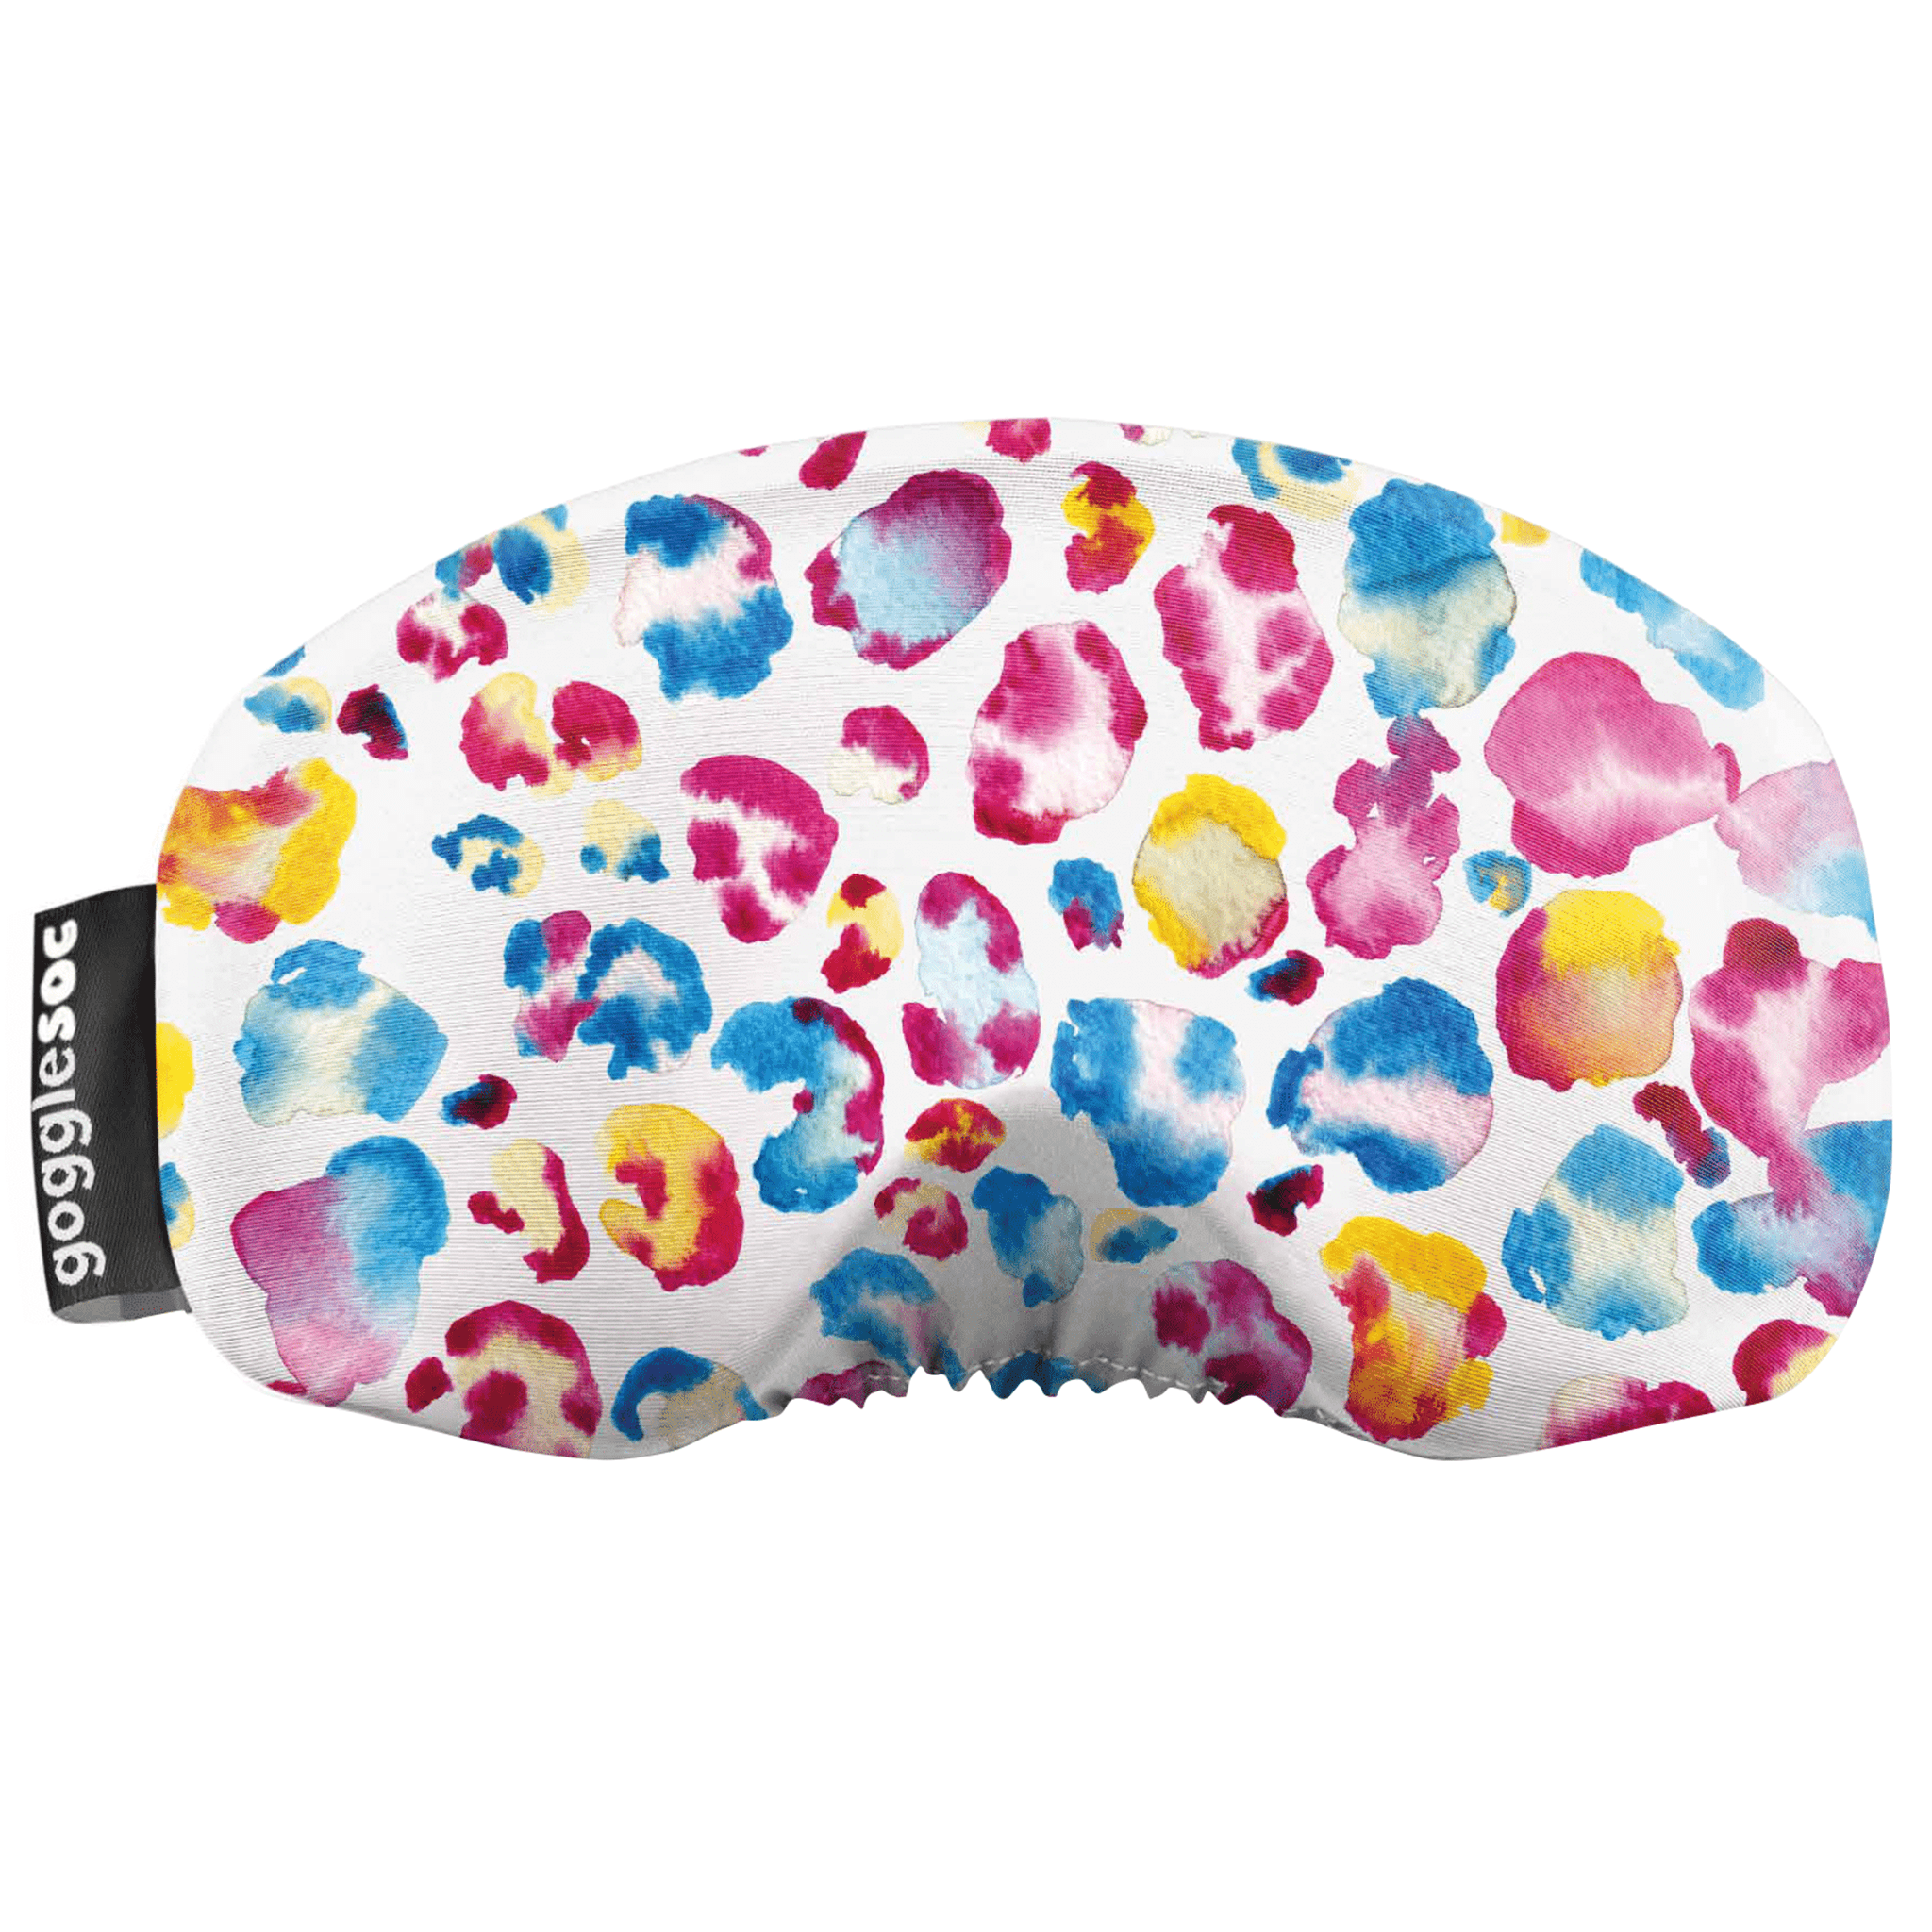 Gogglesoc - Watercolour Leopard Soc Funky Yeti Exclusive Goggle Cover